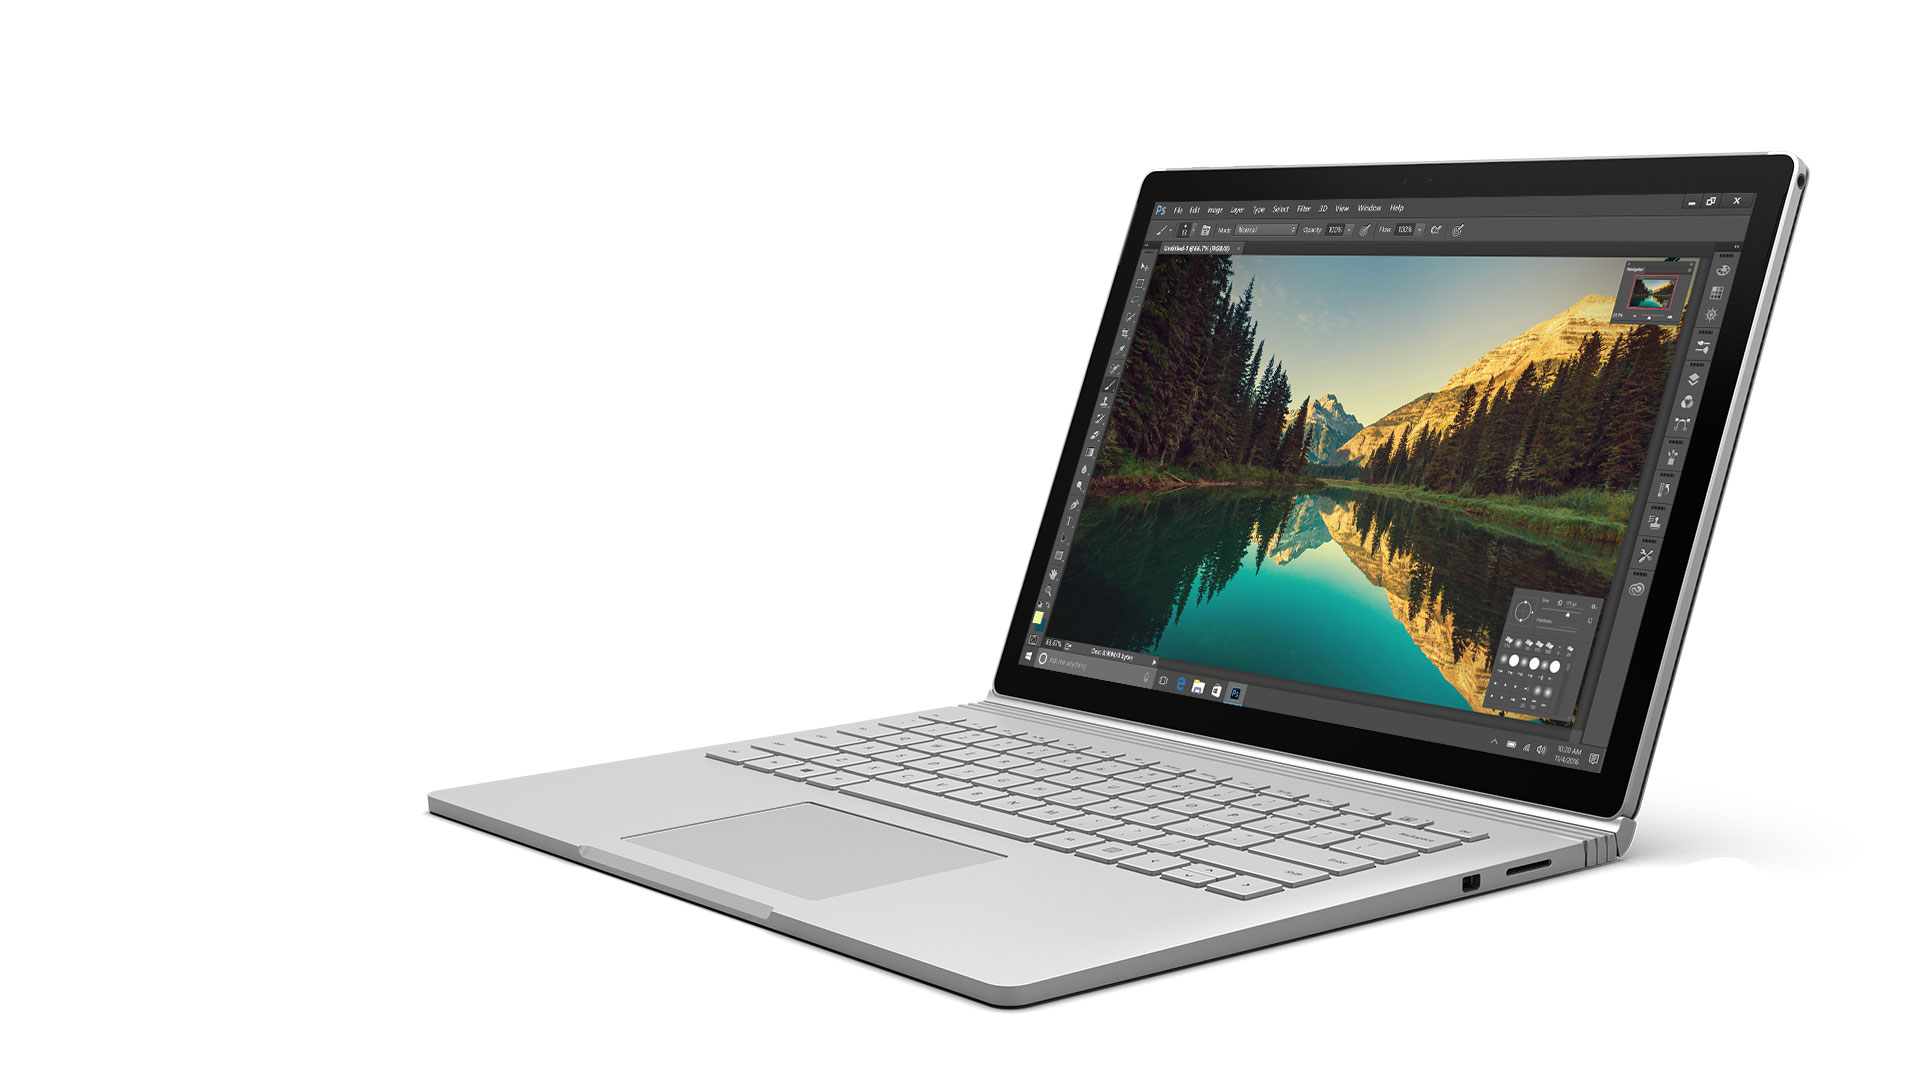 Surface Book in Laptop Mode